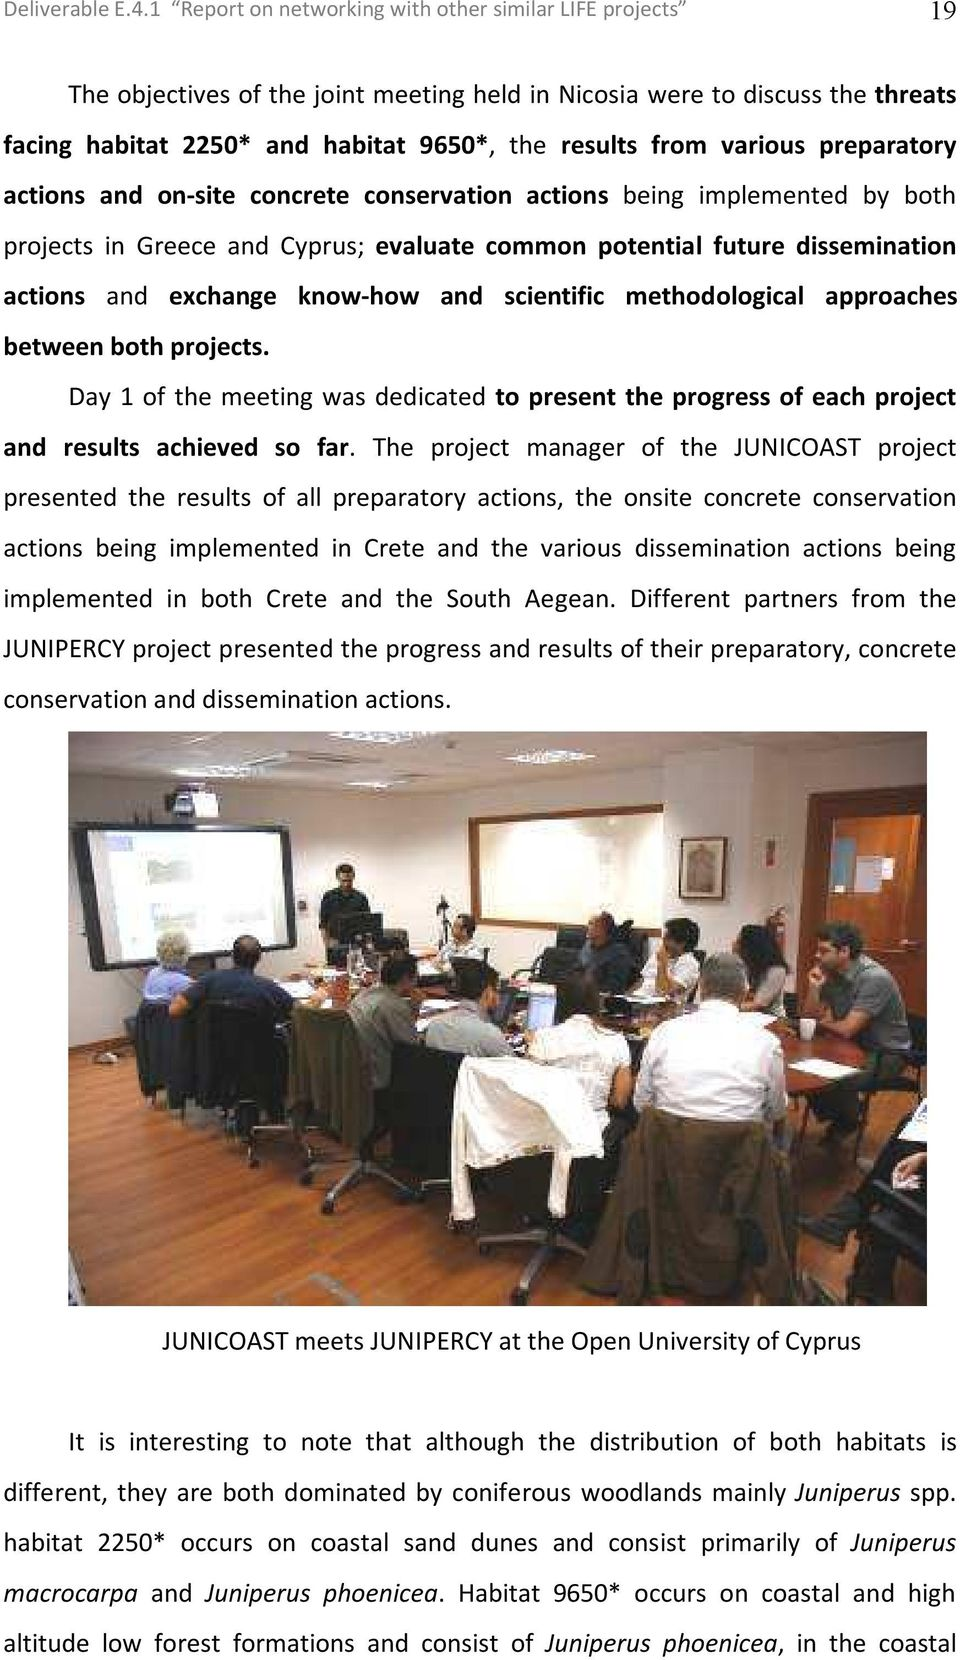 various preparatory actions and on-site concrete conservation actions being implemented by both projects in Greece and Cyprus; evaluate common potential future dissemination actions and exchange